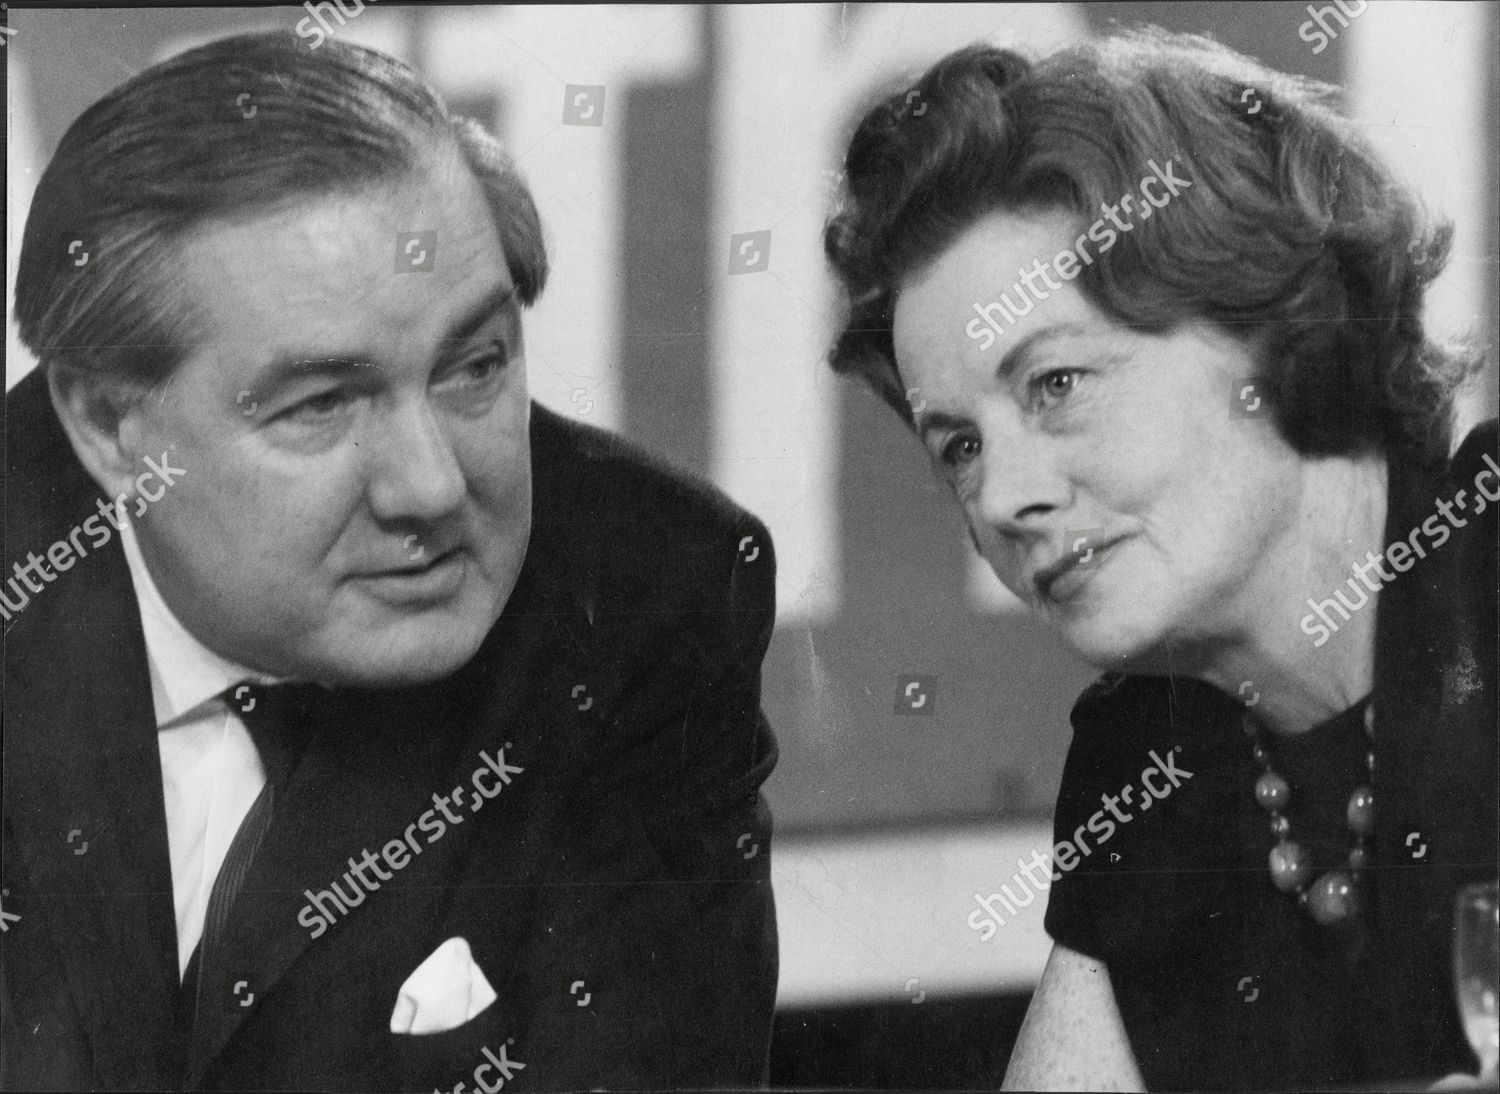 Stock photo of James Callaghan And Fellow Labour Politician Barbara Castle At Party Conference Brighton 1966.